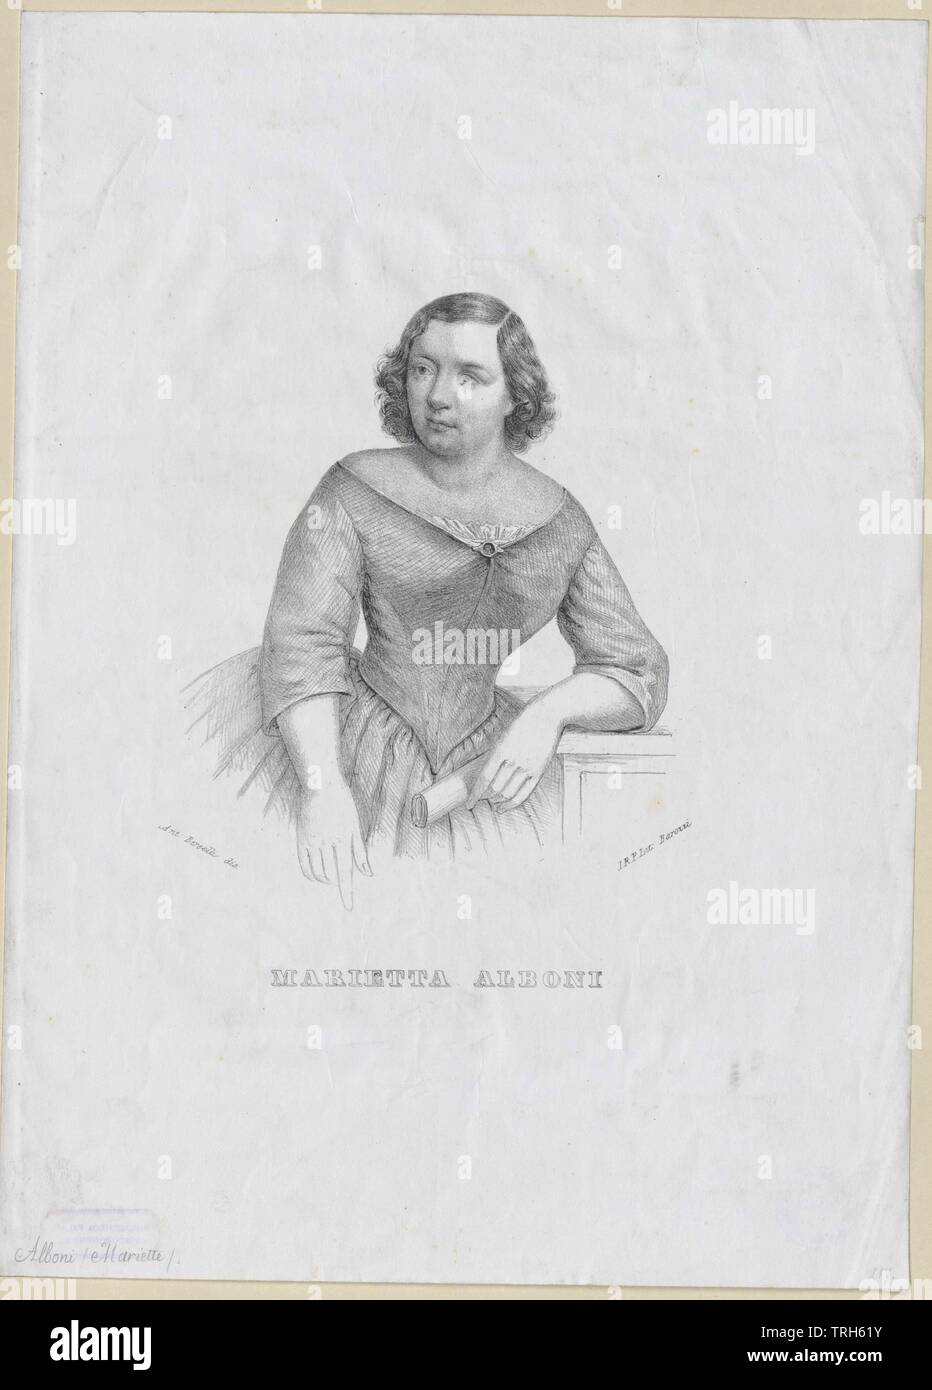 Alboni, Marietta, Italian opera singer (alto), member of the Viennese opera 1843-1845, if of the Parisian Italian opera,personality, celebrities, further, other, 19th century, people, half-length, half length, woman, women, female, opera singer, opera singers, member, members, opera, operas, Additional-Rights-Clearance-Info-Not-Available - Stock Image